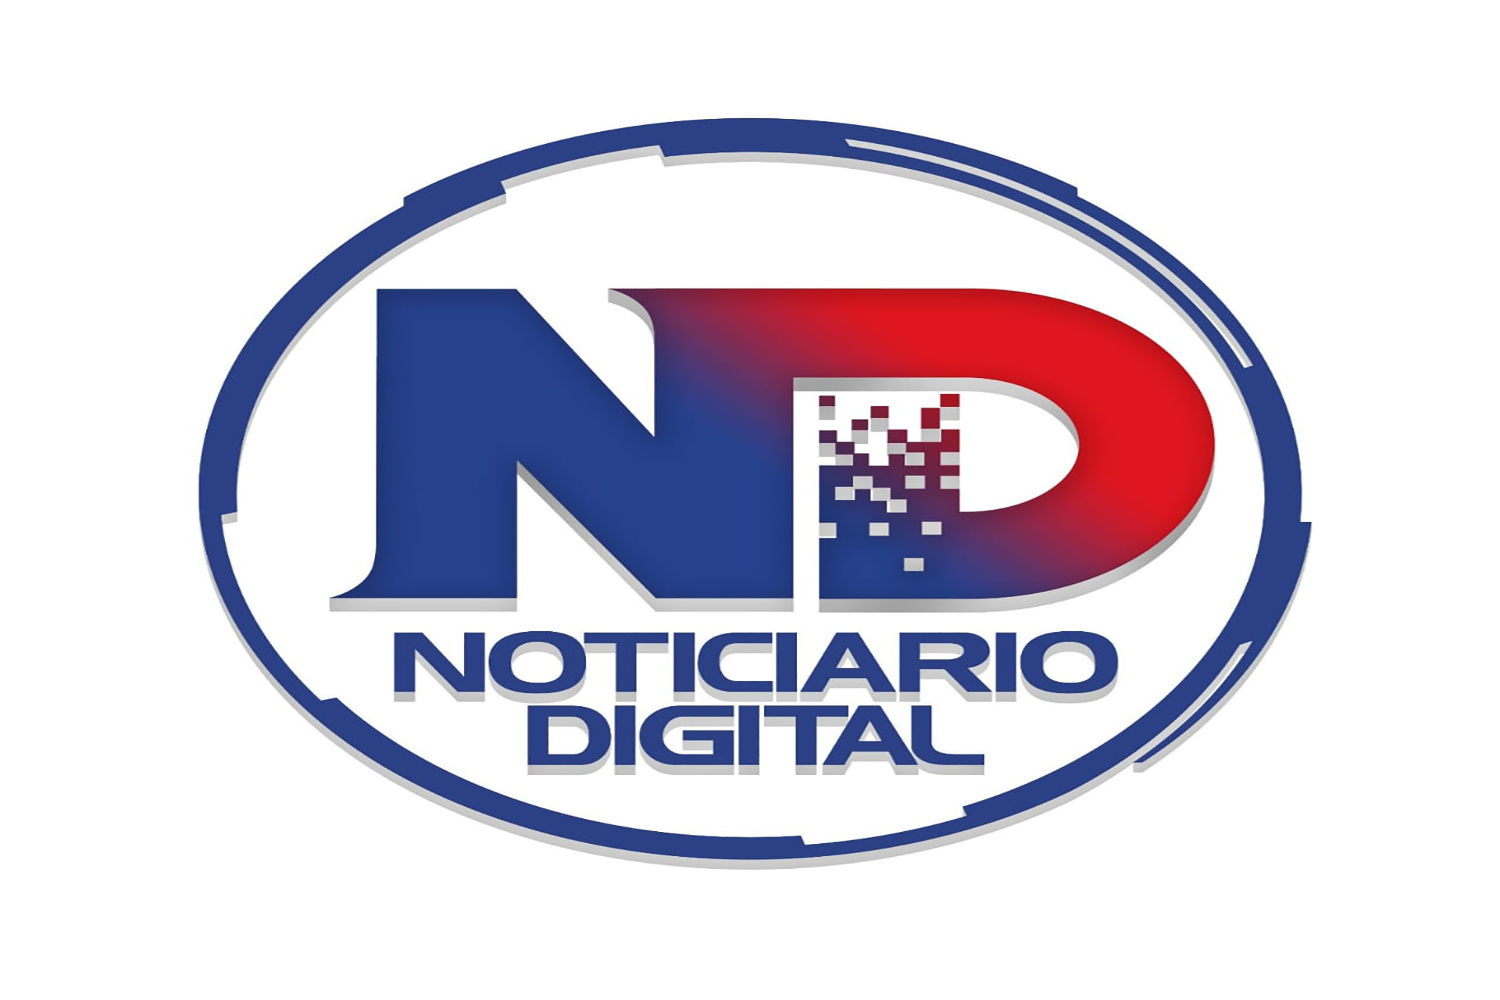 NOTICIARIO DIGITAL #LARADIO247FM JUEVES 21 NOV 2019